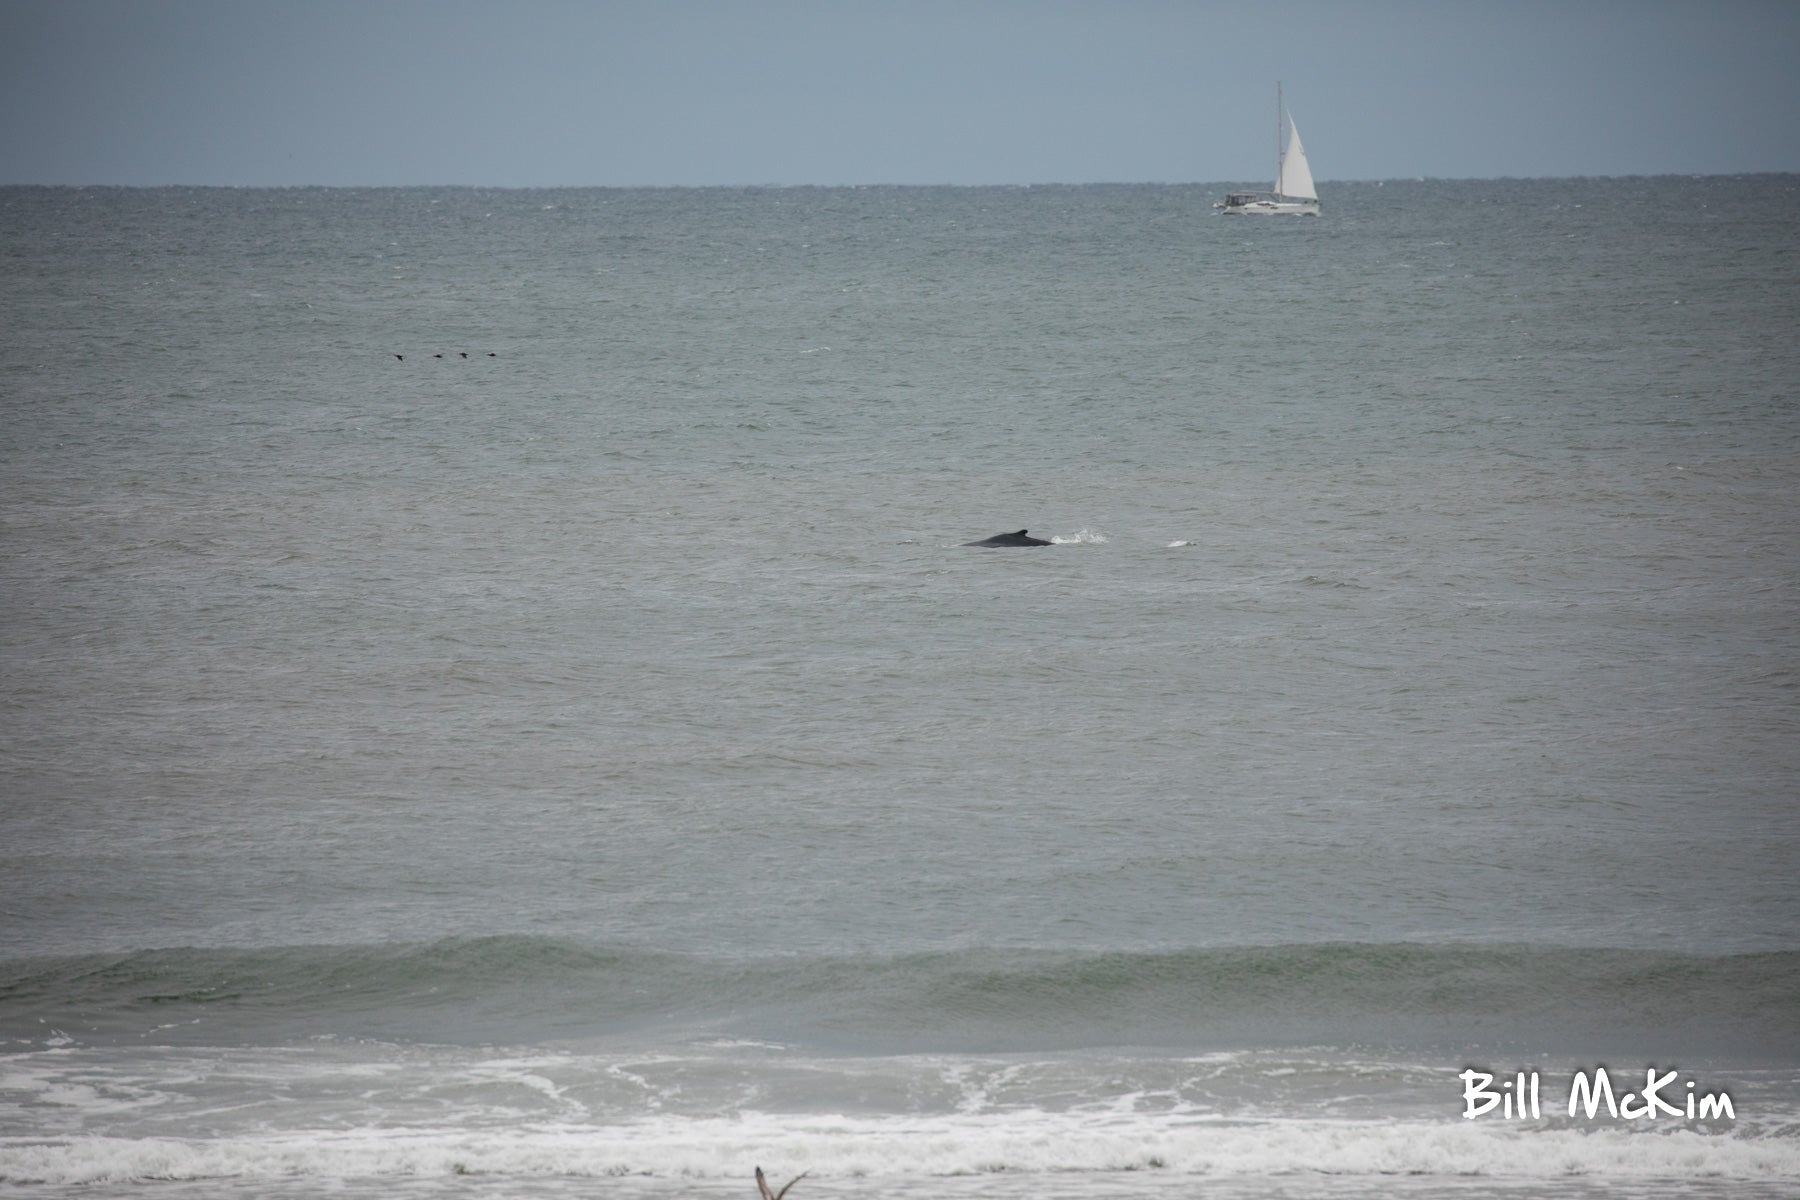 2 Humpback Whales off the coast of Belmar this morning.